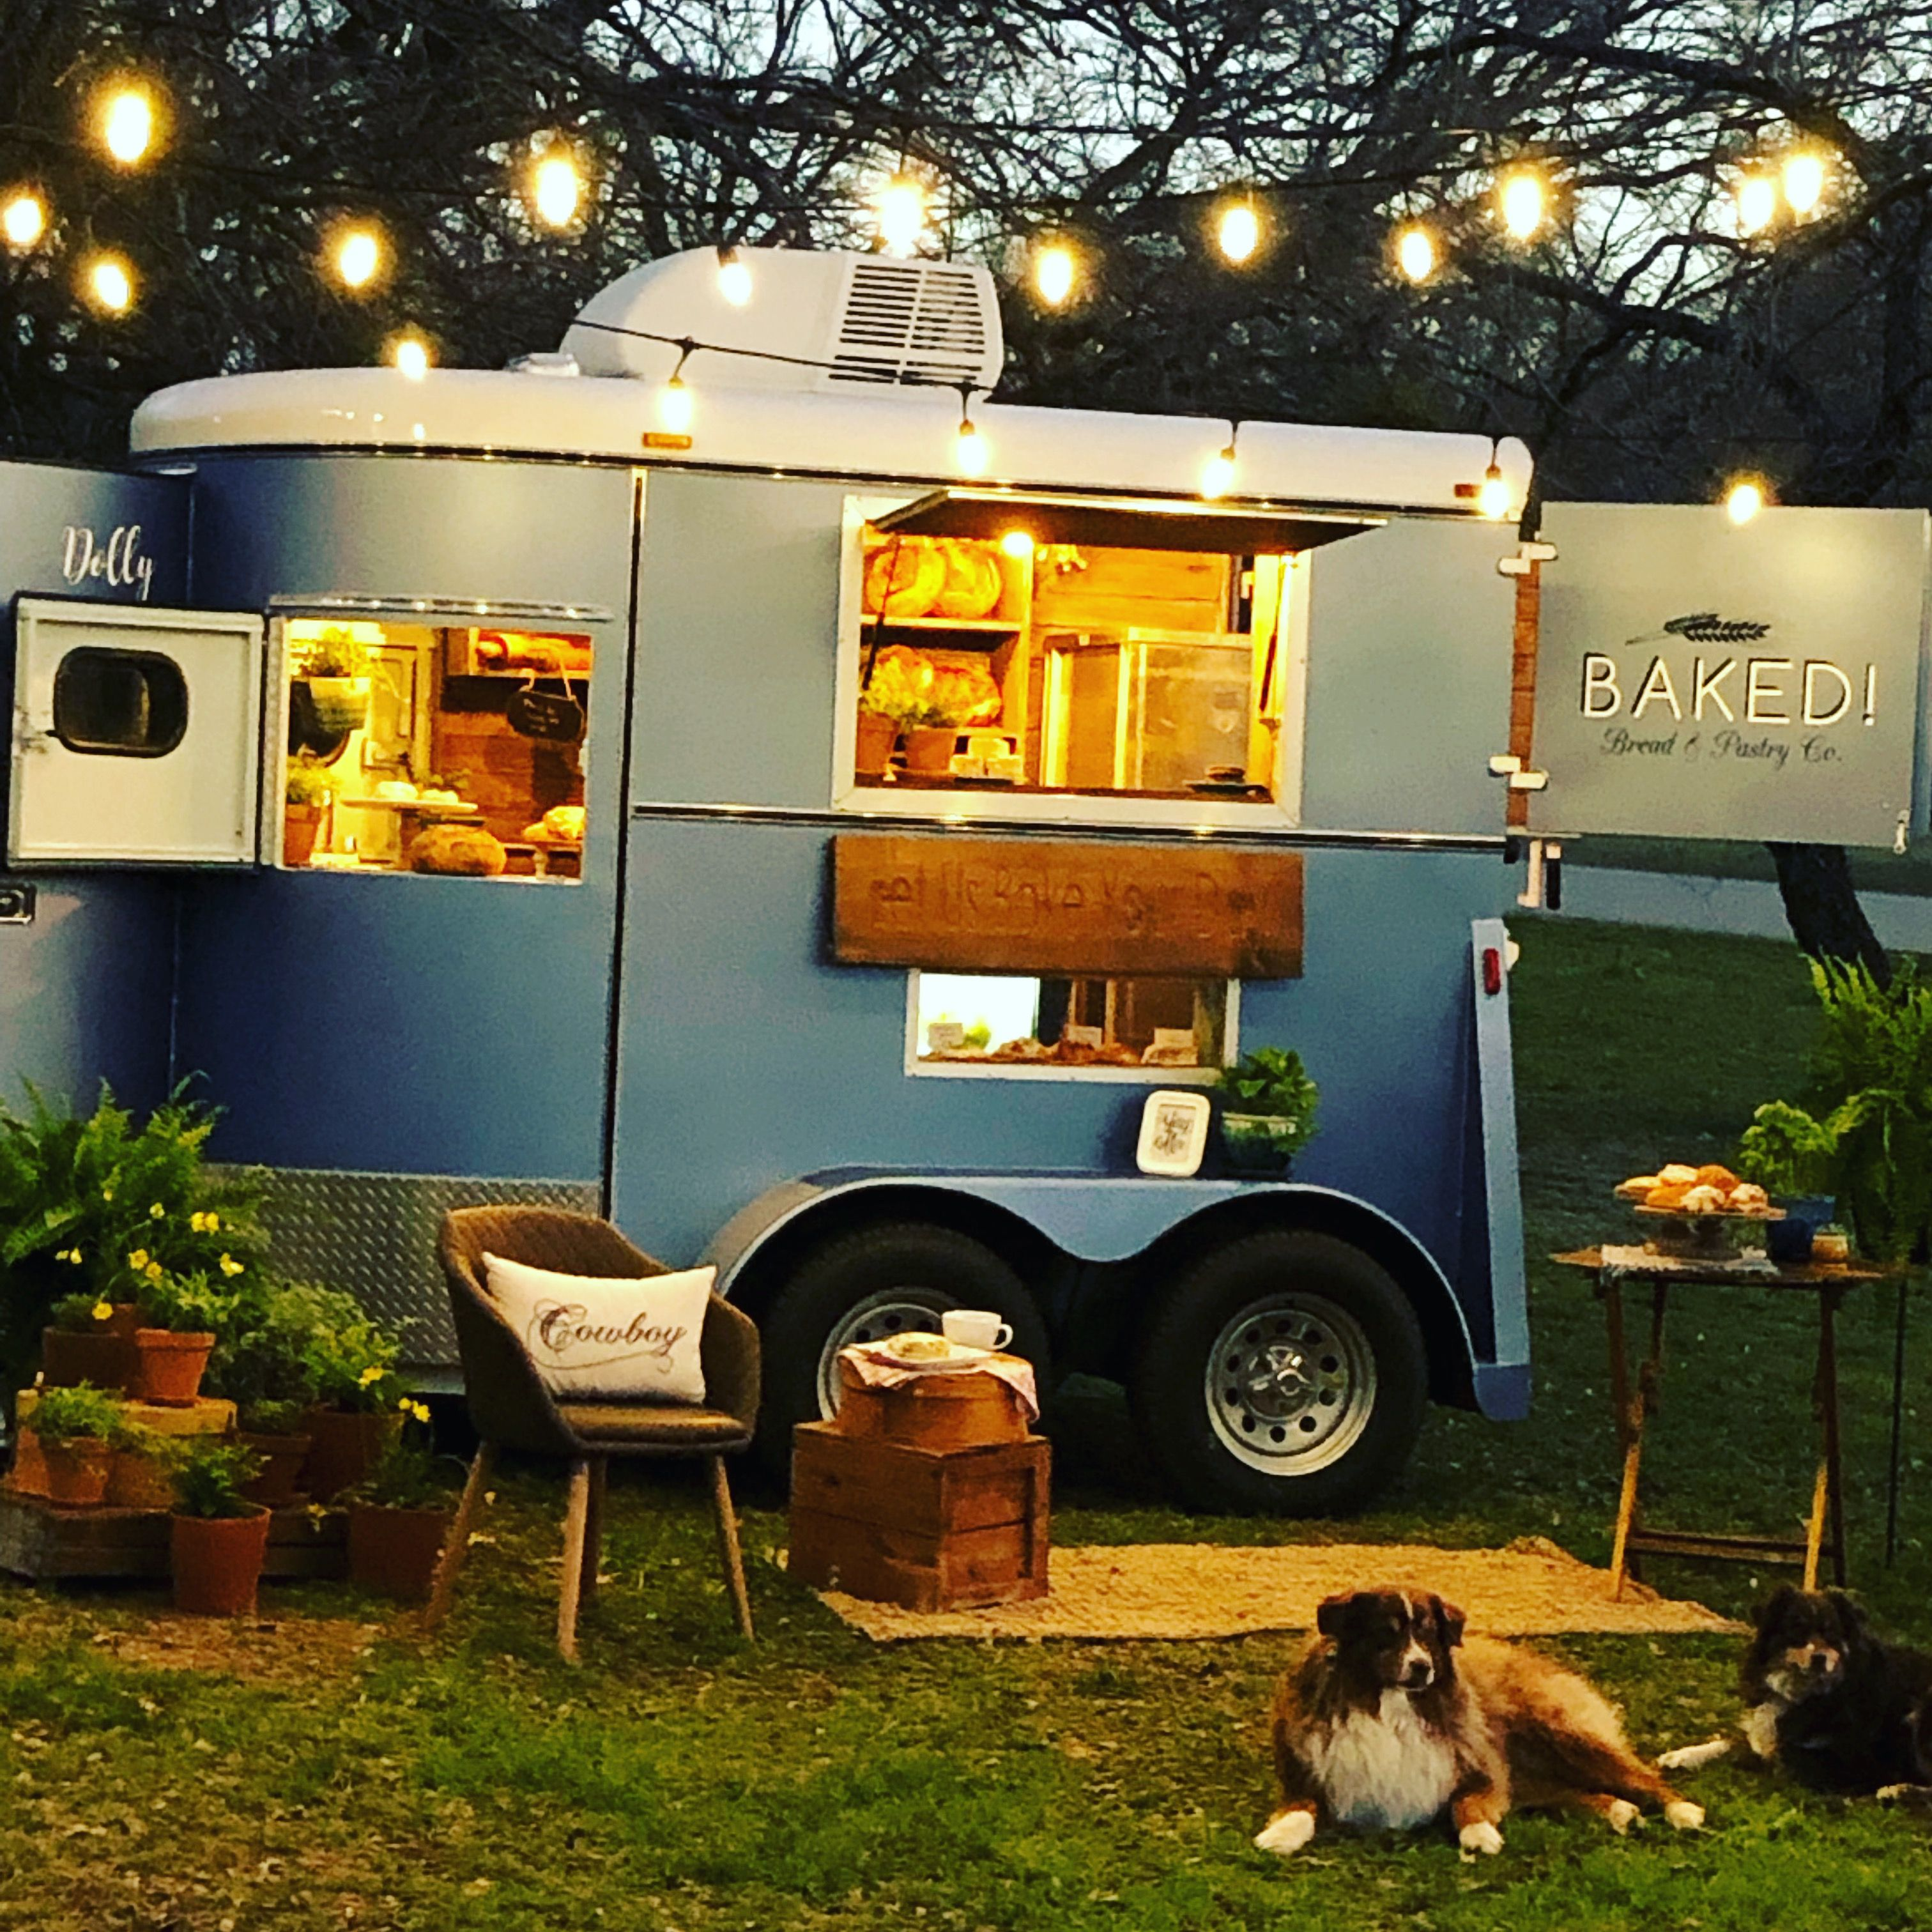 Horse trailer conversion for baked bread and pastries